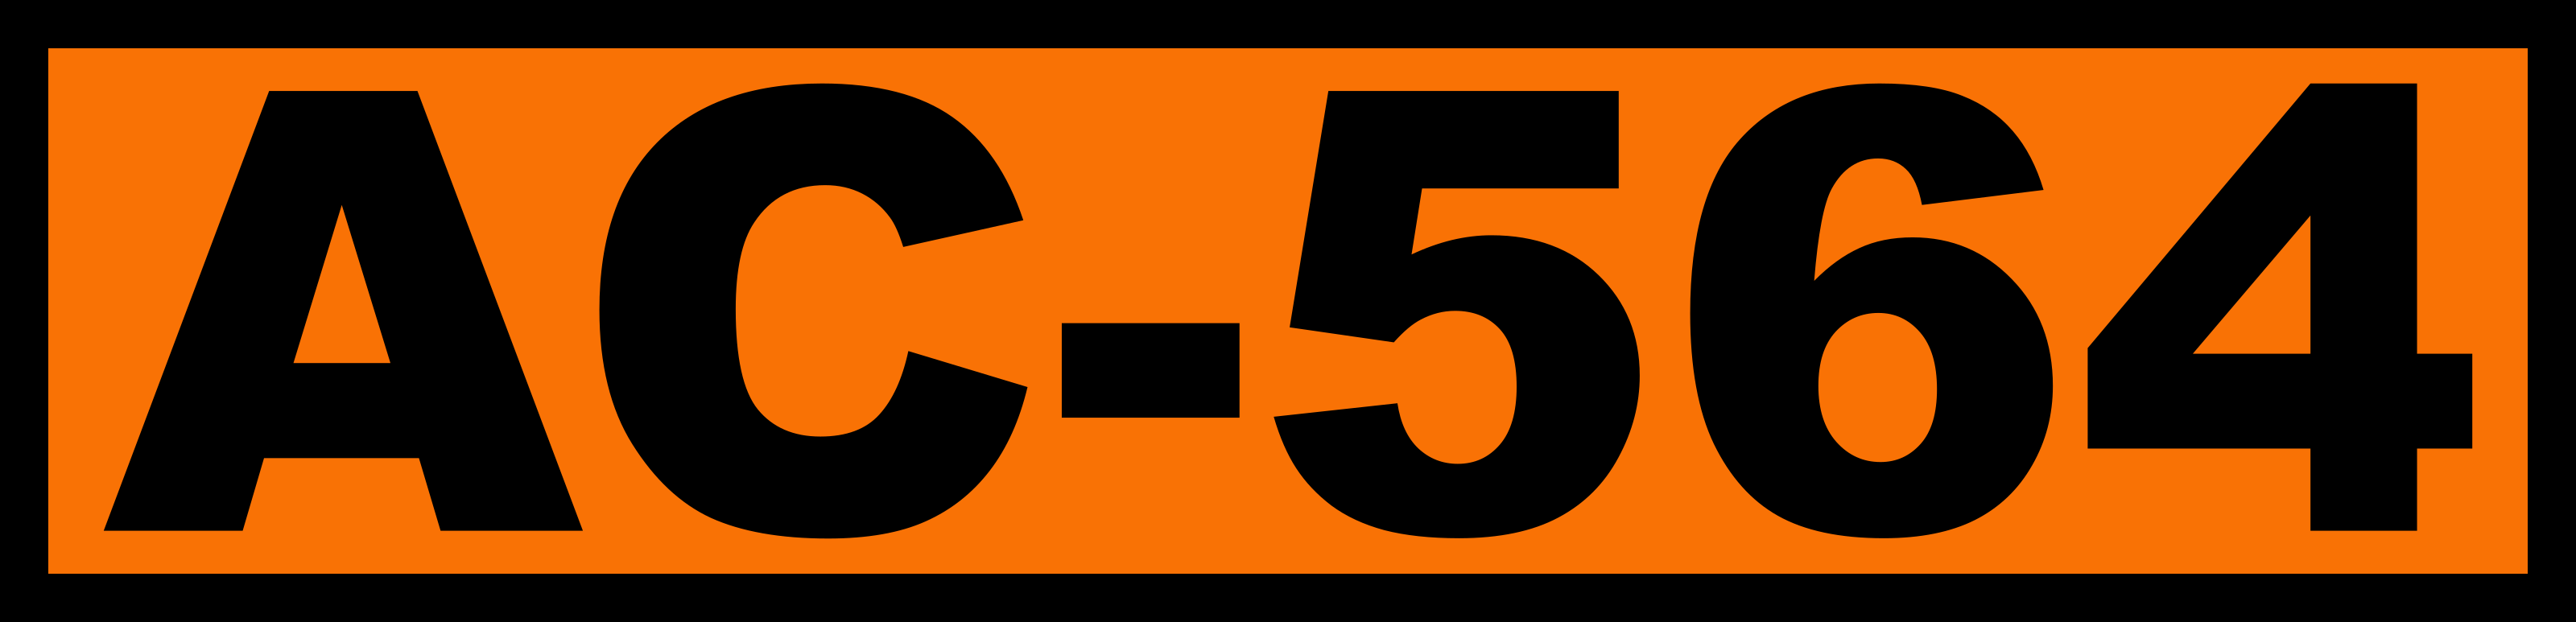 AC-564.png